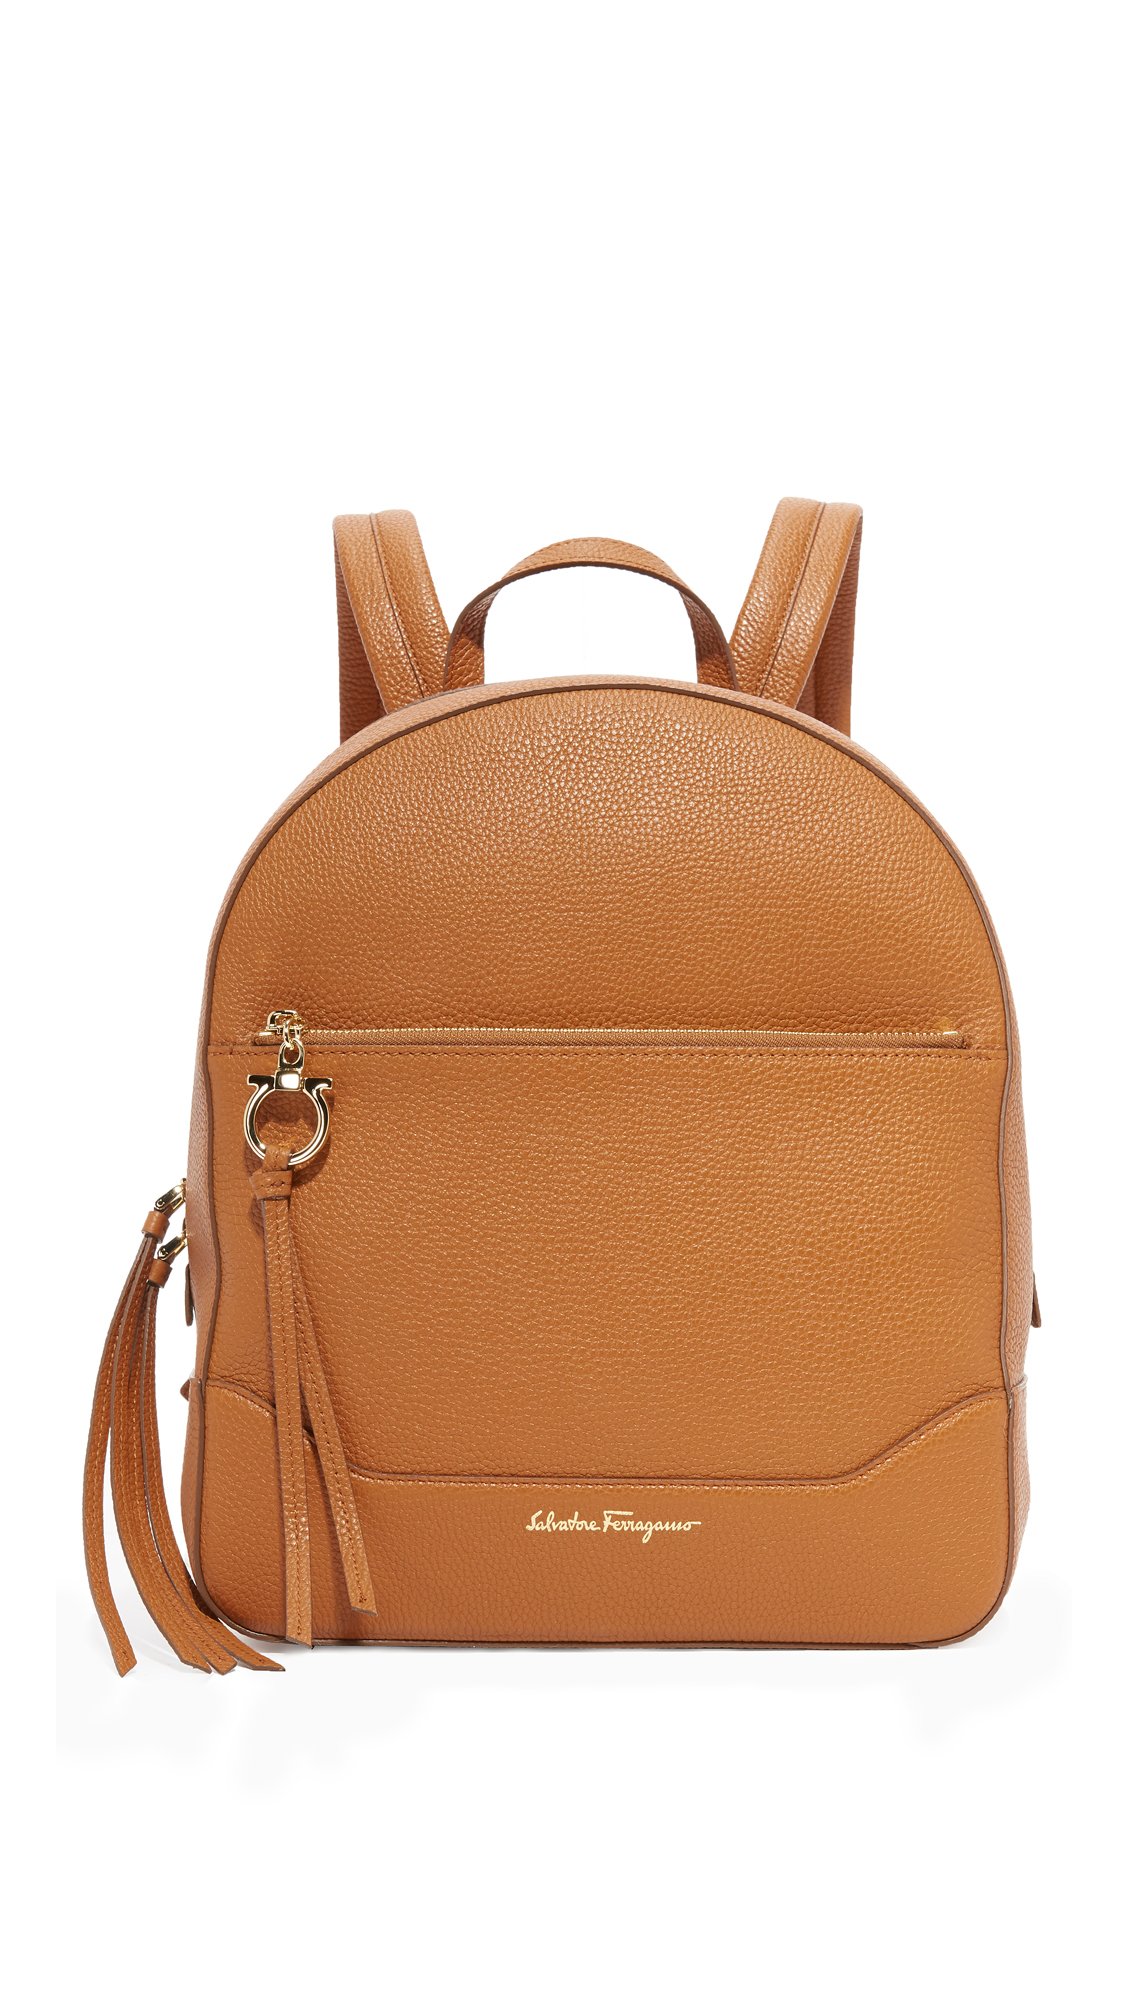 A boxy Salvatore Ferragamo backpack in pebbled leather. Zip front pocket with logo charm and slim back pocket. Wraparound top zip and lined, 1 pocket interior. Locker loop and adjustable shoulder straps. Dust bag included. Leather: Calfskin.